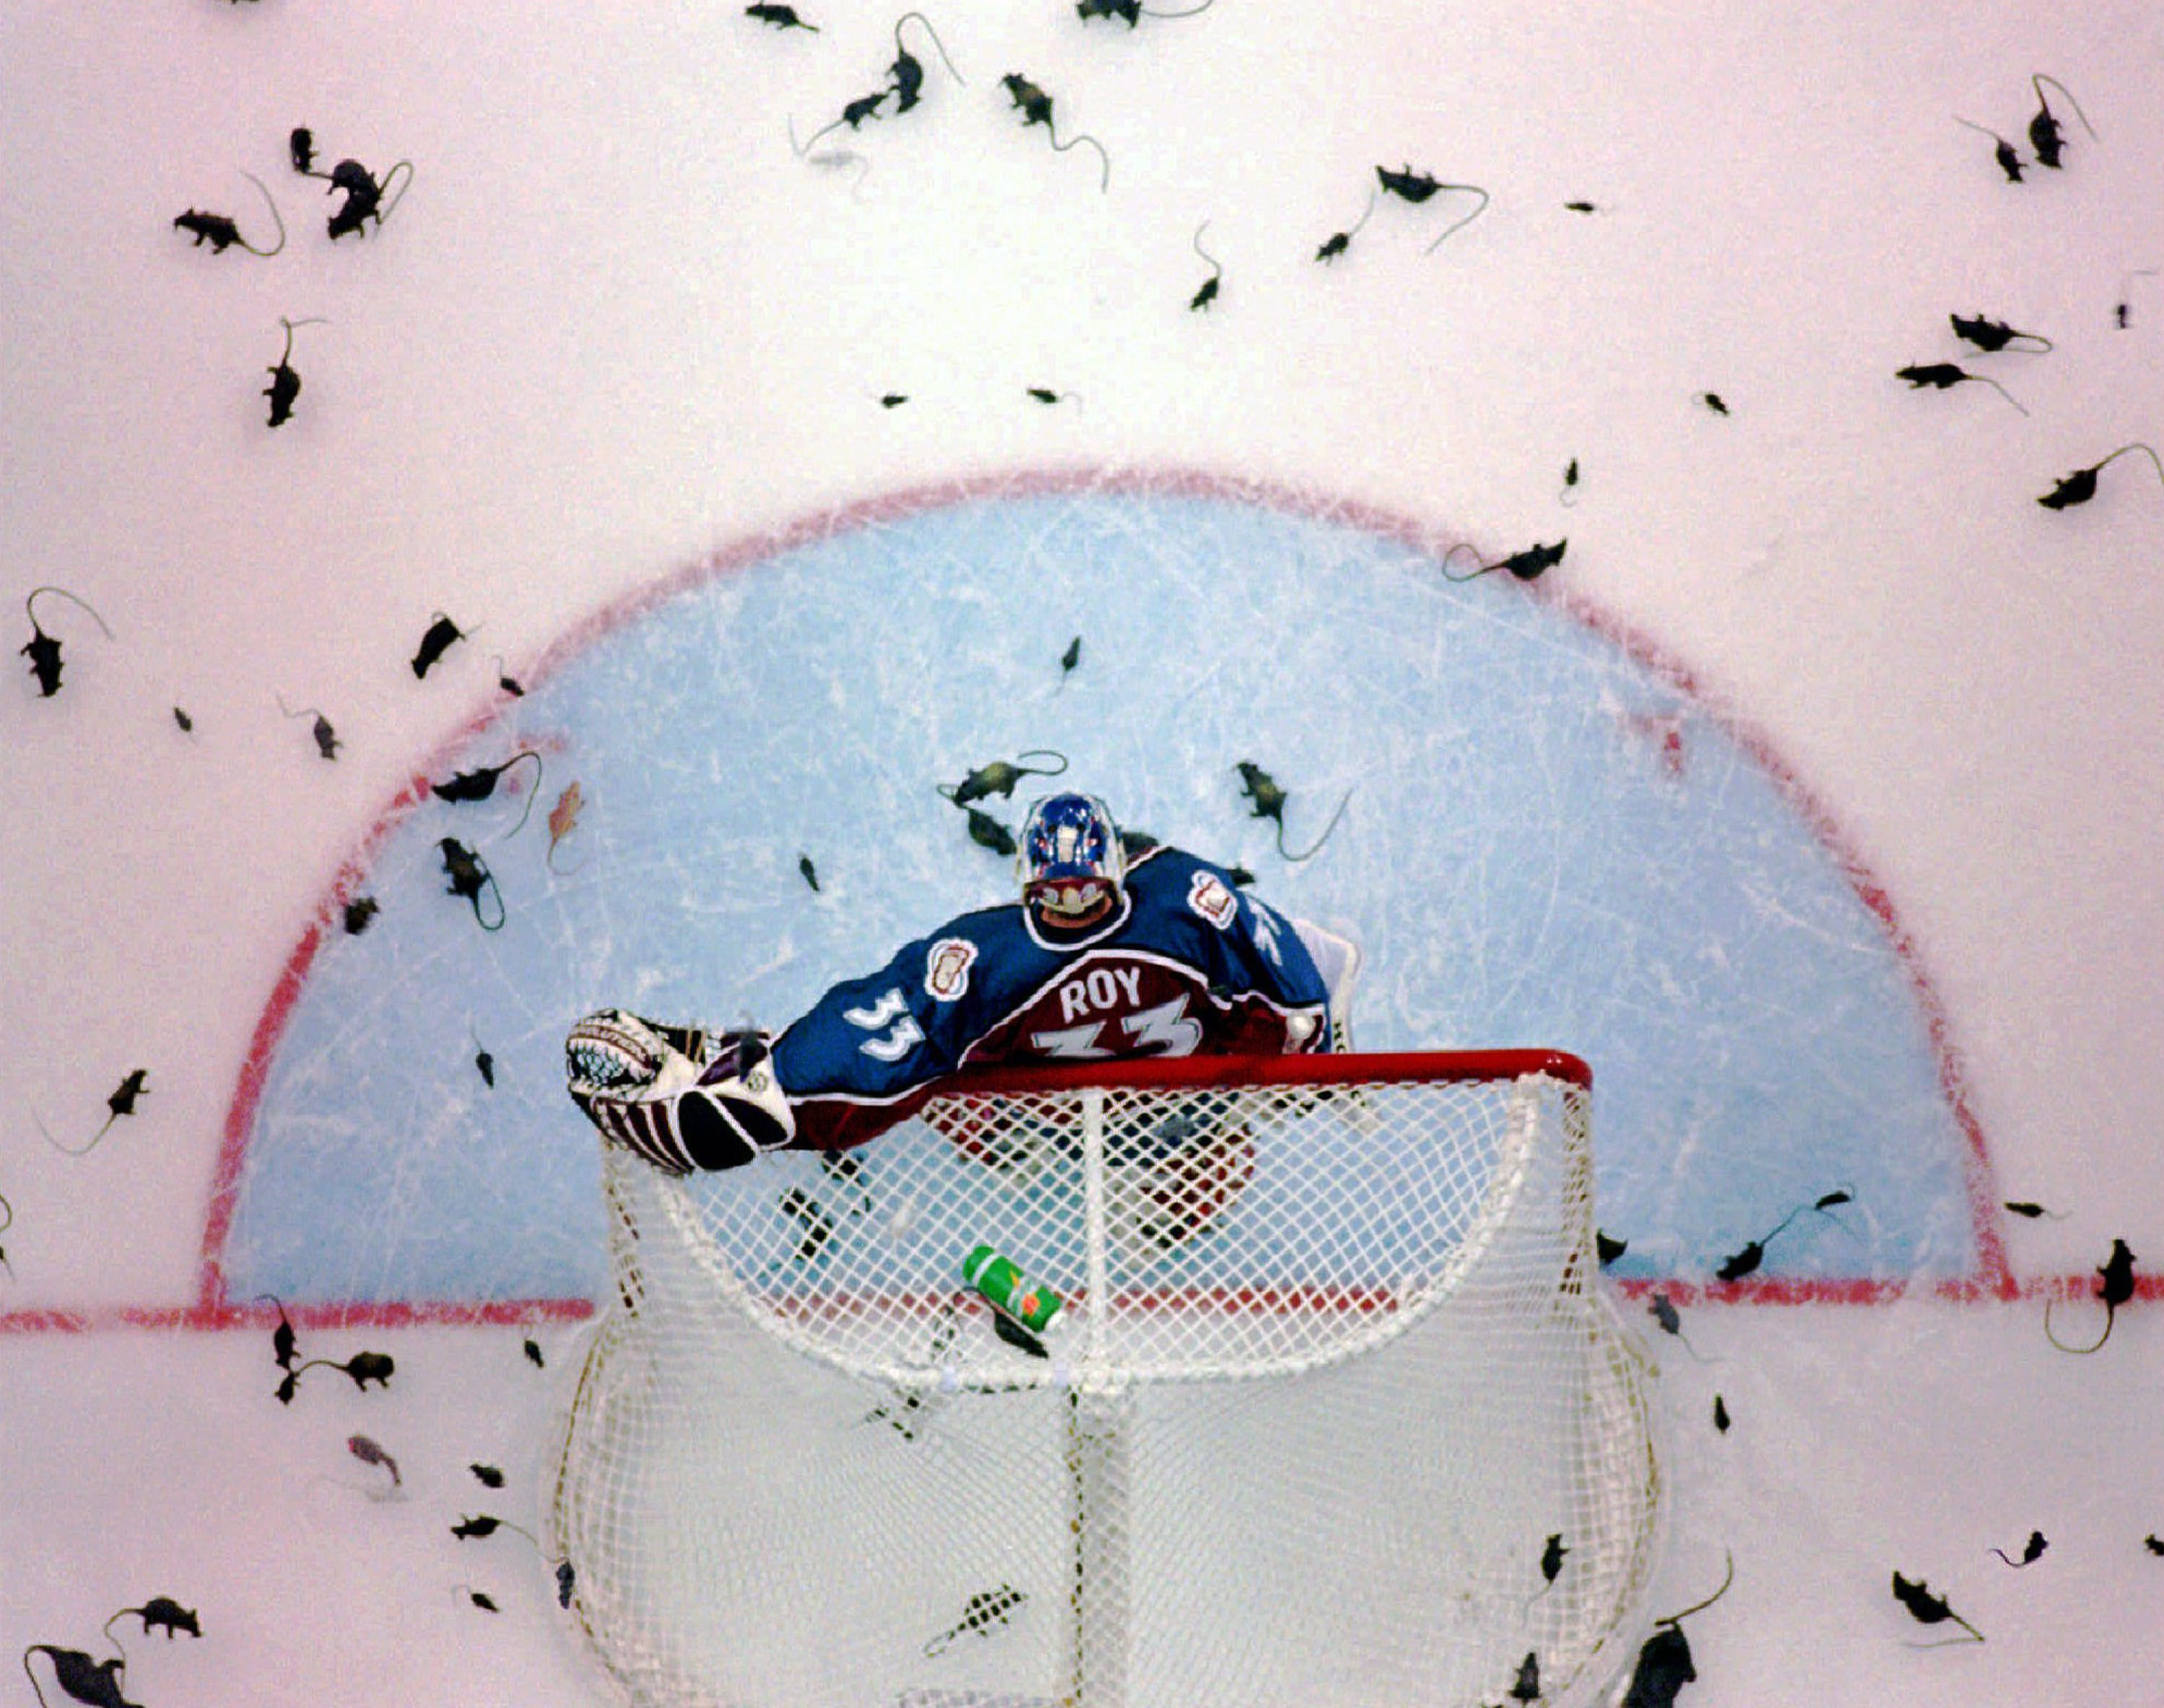 Colorado Avalance goalie Patrick Roy is resigned to a barrage of rats thrown by fans after the Florida Panthers scored a goal in the first period of the 3rd game of the Stanley Cup Finals in Miami Saturday, June 8, 1996. (AP Photo/Rick Bowmer)